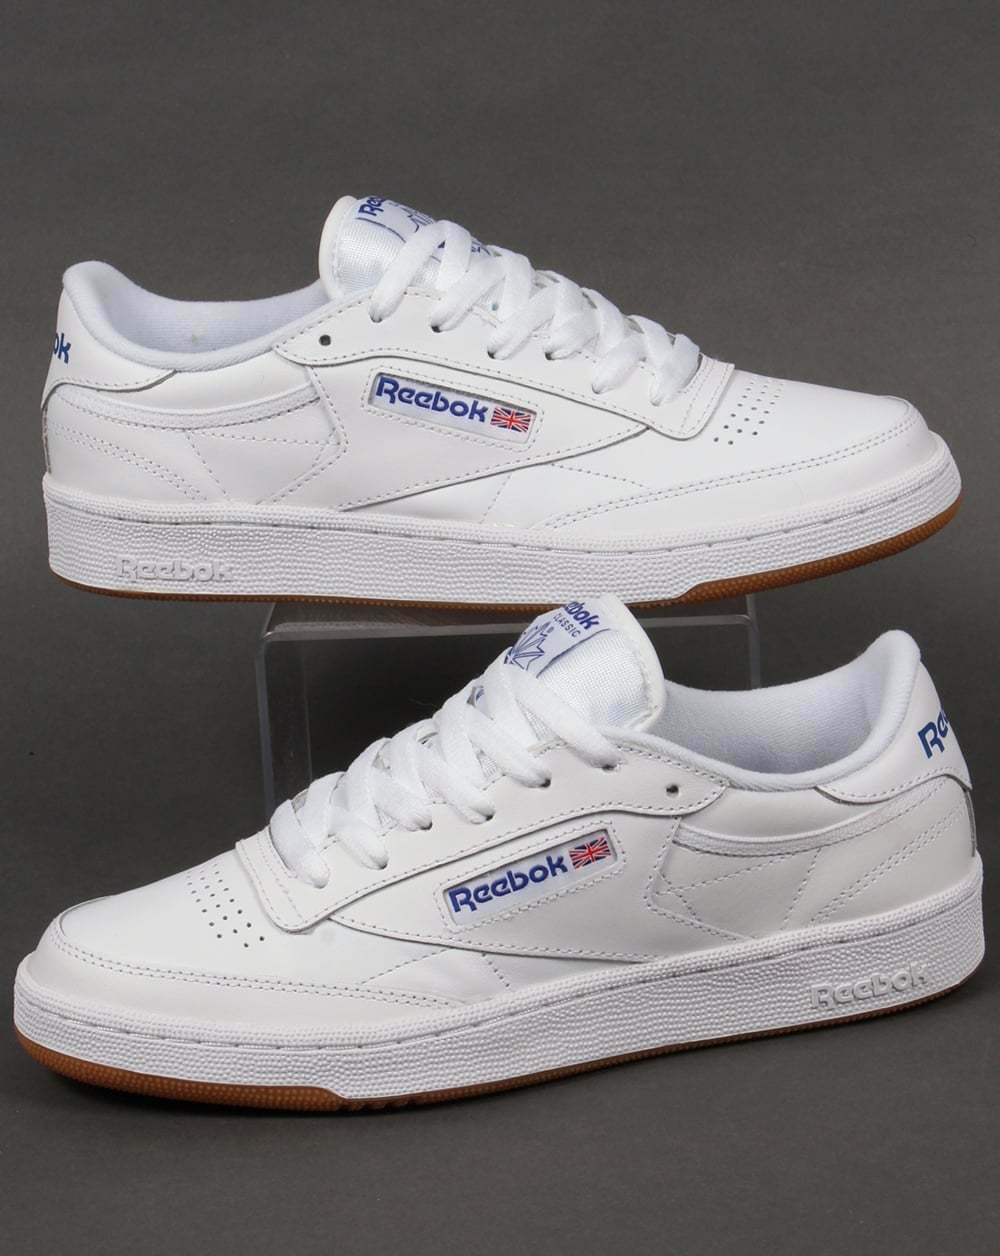 330a50aa934f34 Men s Reebok Club C 85 Low Rise Trainers in White UK 9   EU 43 for ...